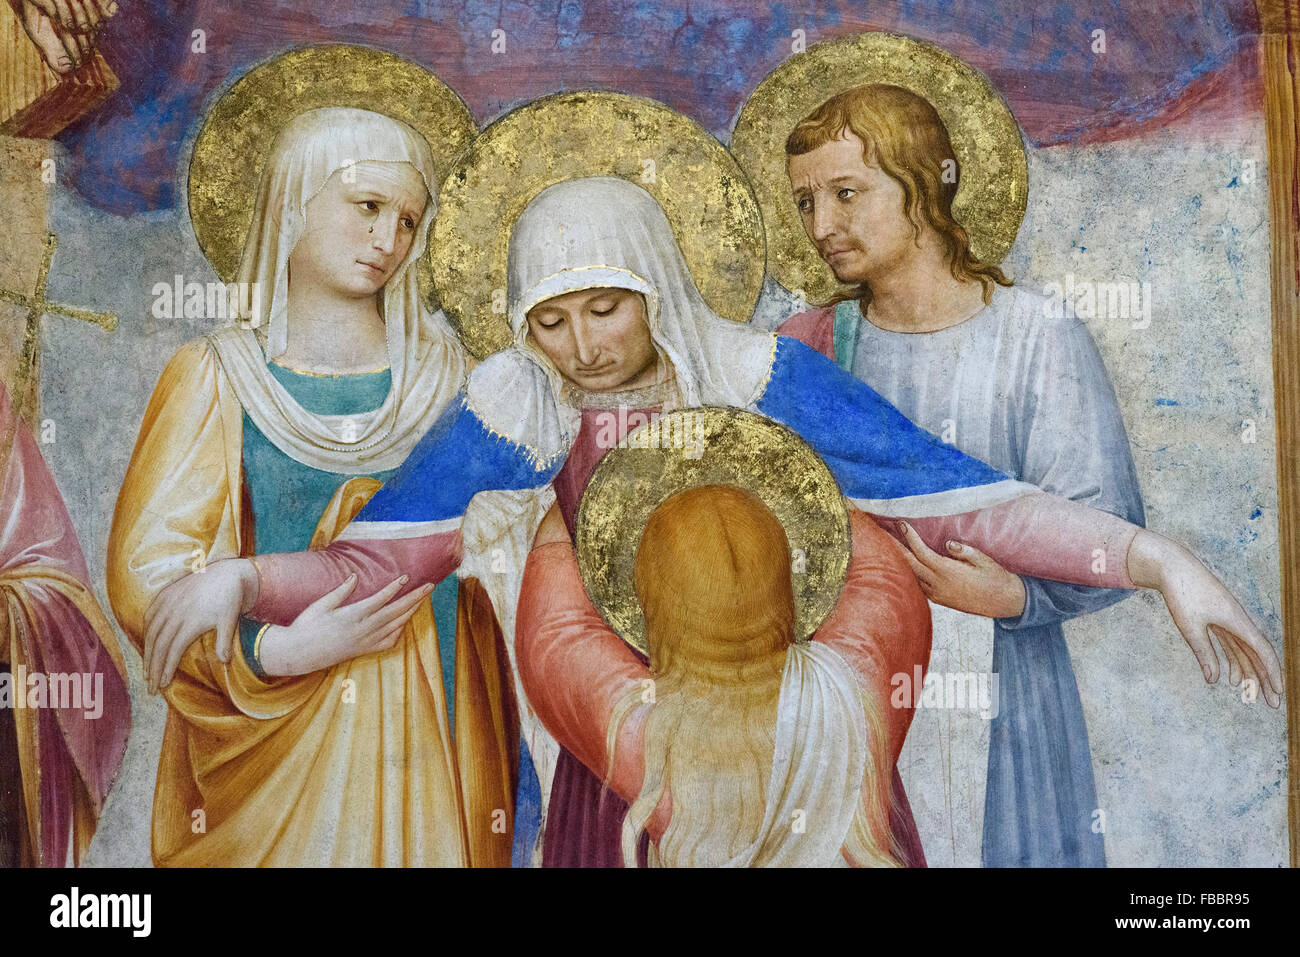 Florence. Italy. Museum of San Marco. The Crucifixion and Saints (detail), fresco, by Fra Angelico and assistants - Stock Image